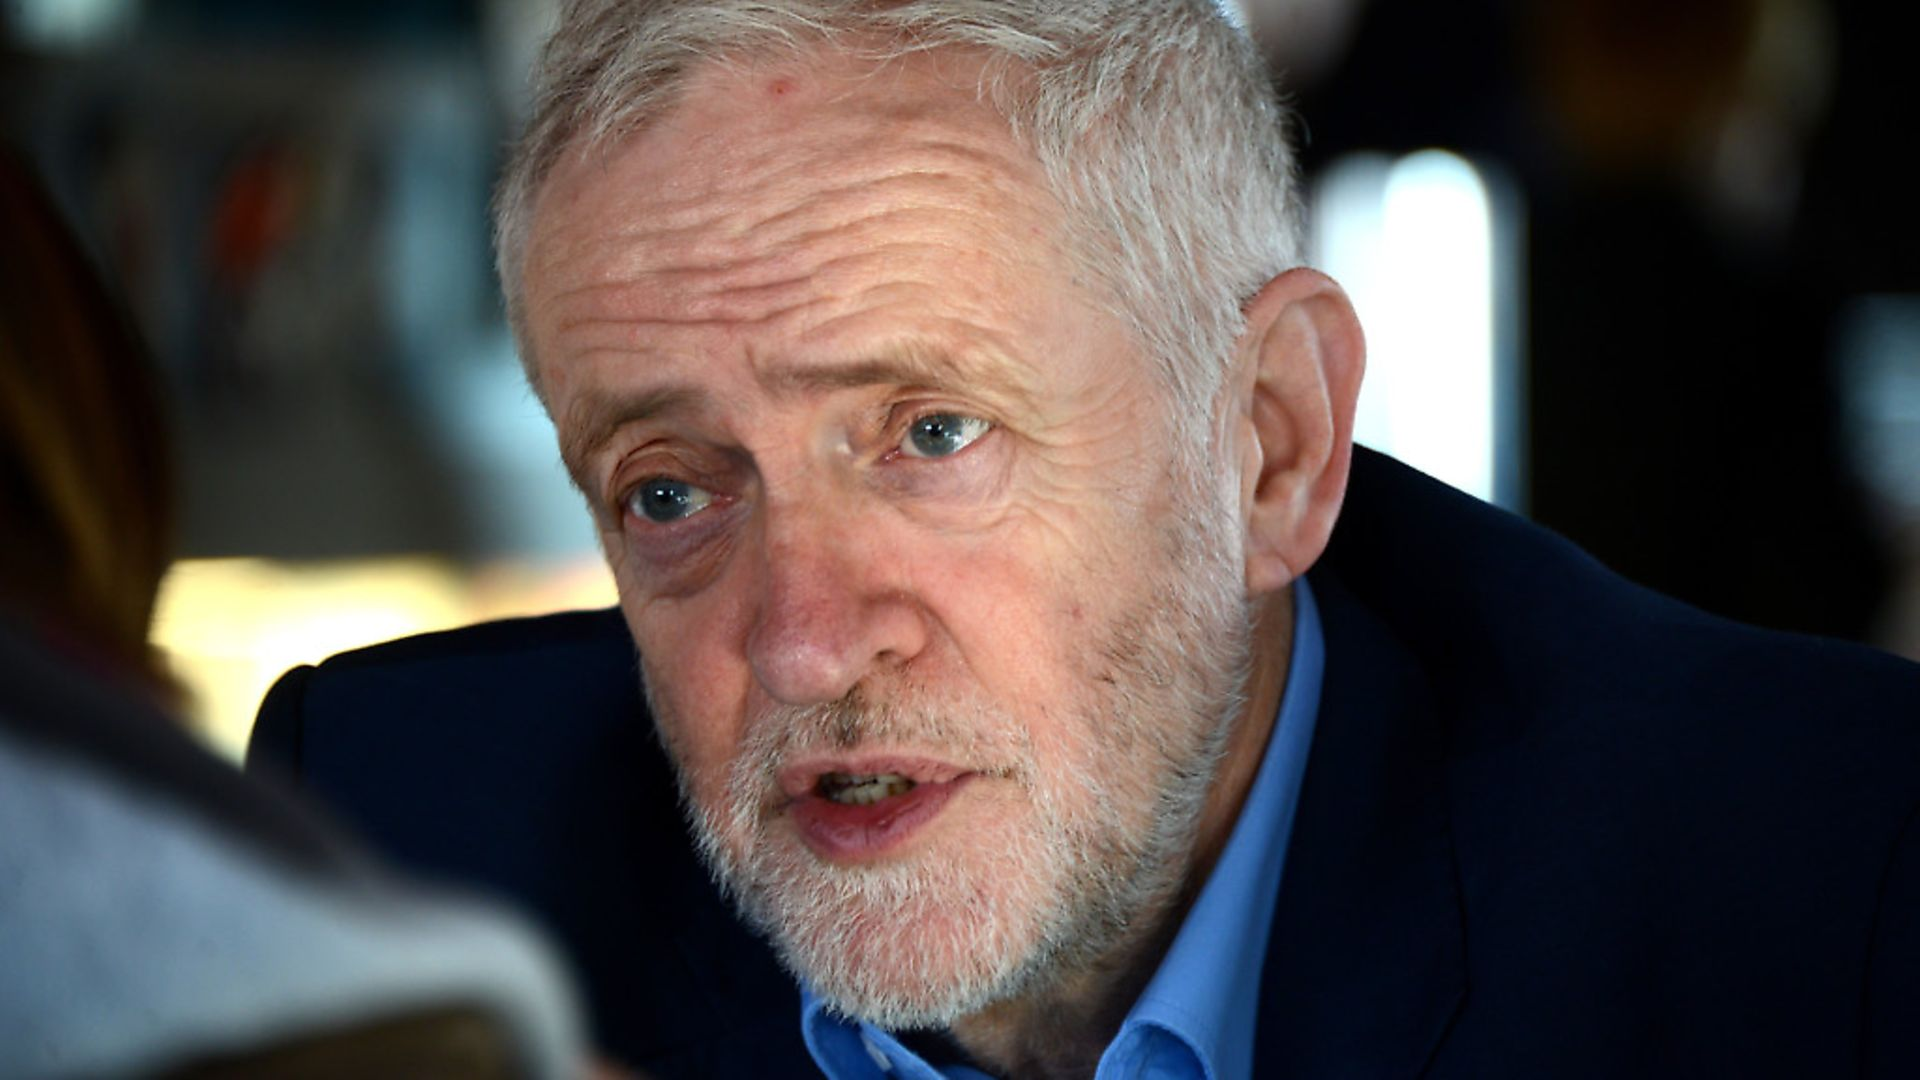 The Labour leader Jeremy Corbyn speaking to The New European. Photograph: Antony Kelly. - Credit: Archant